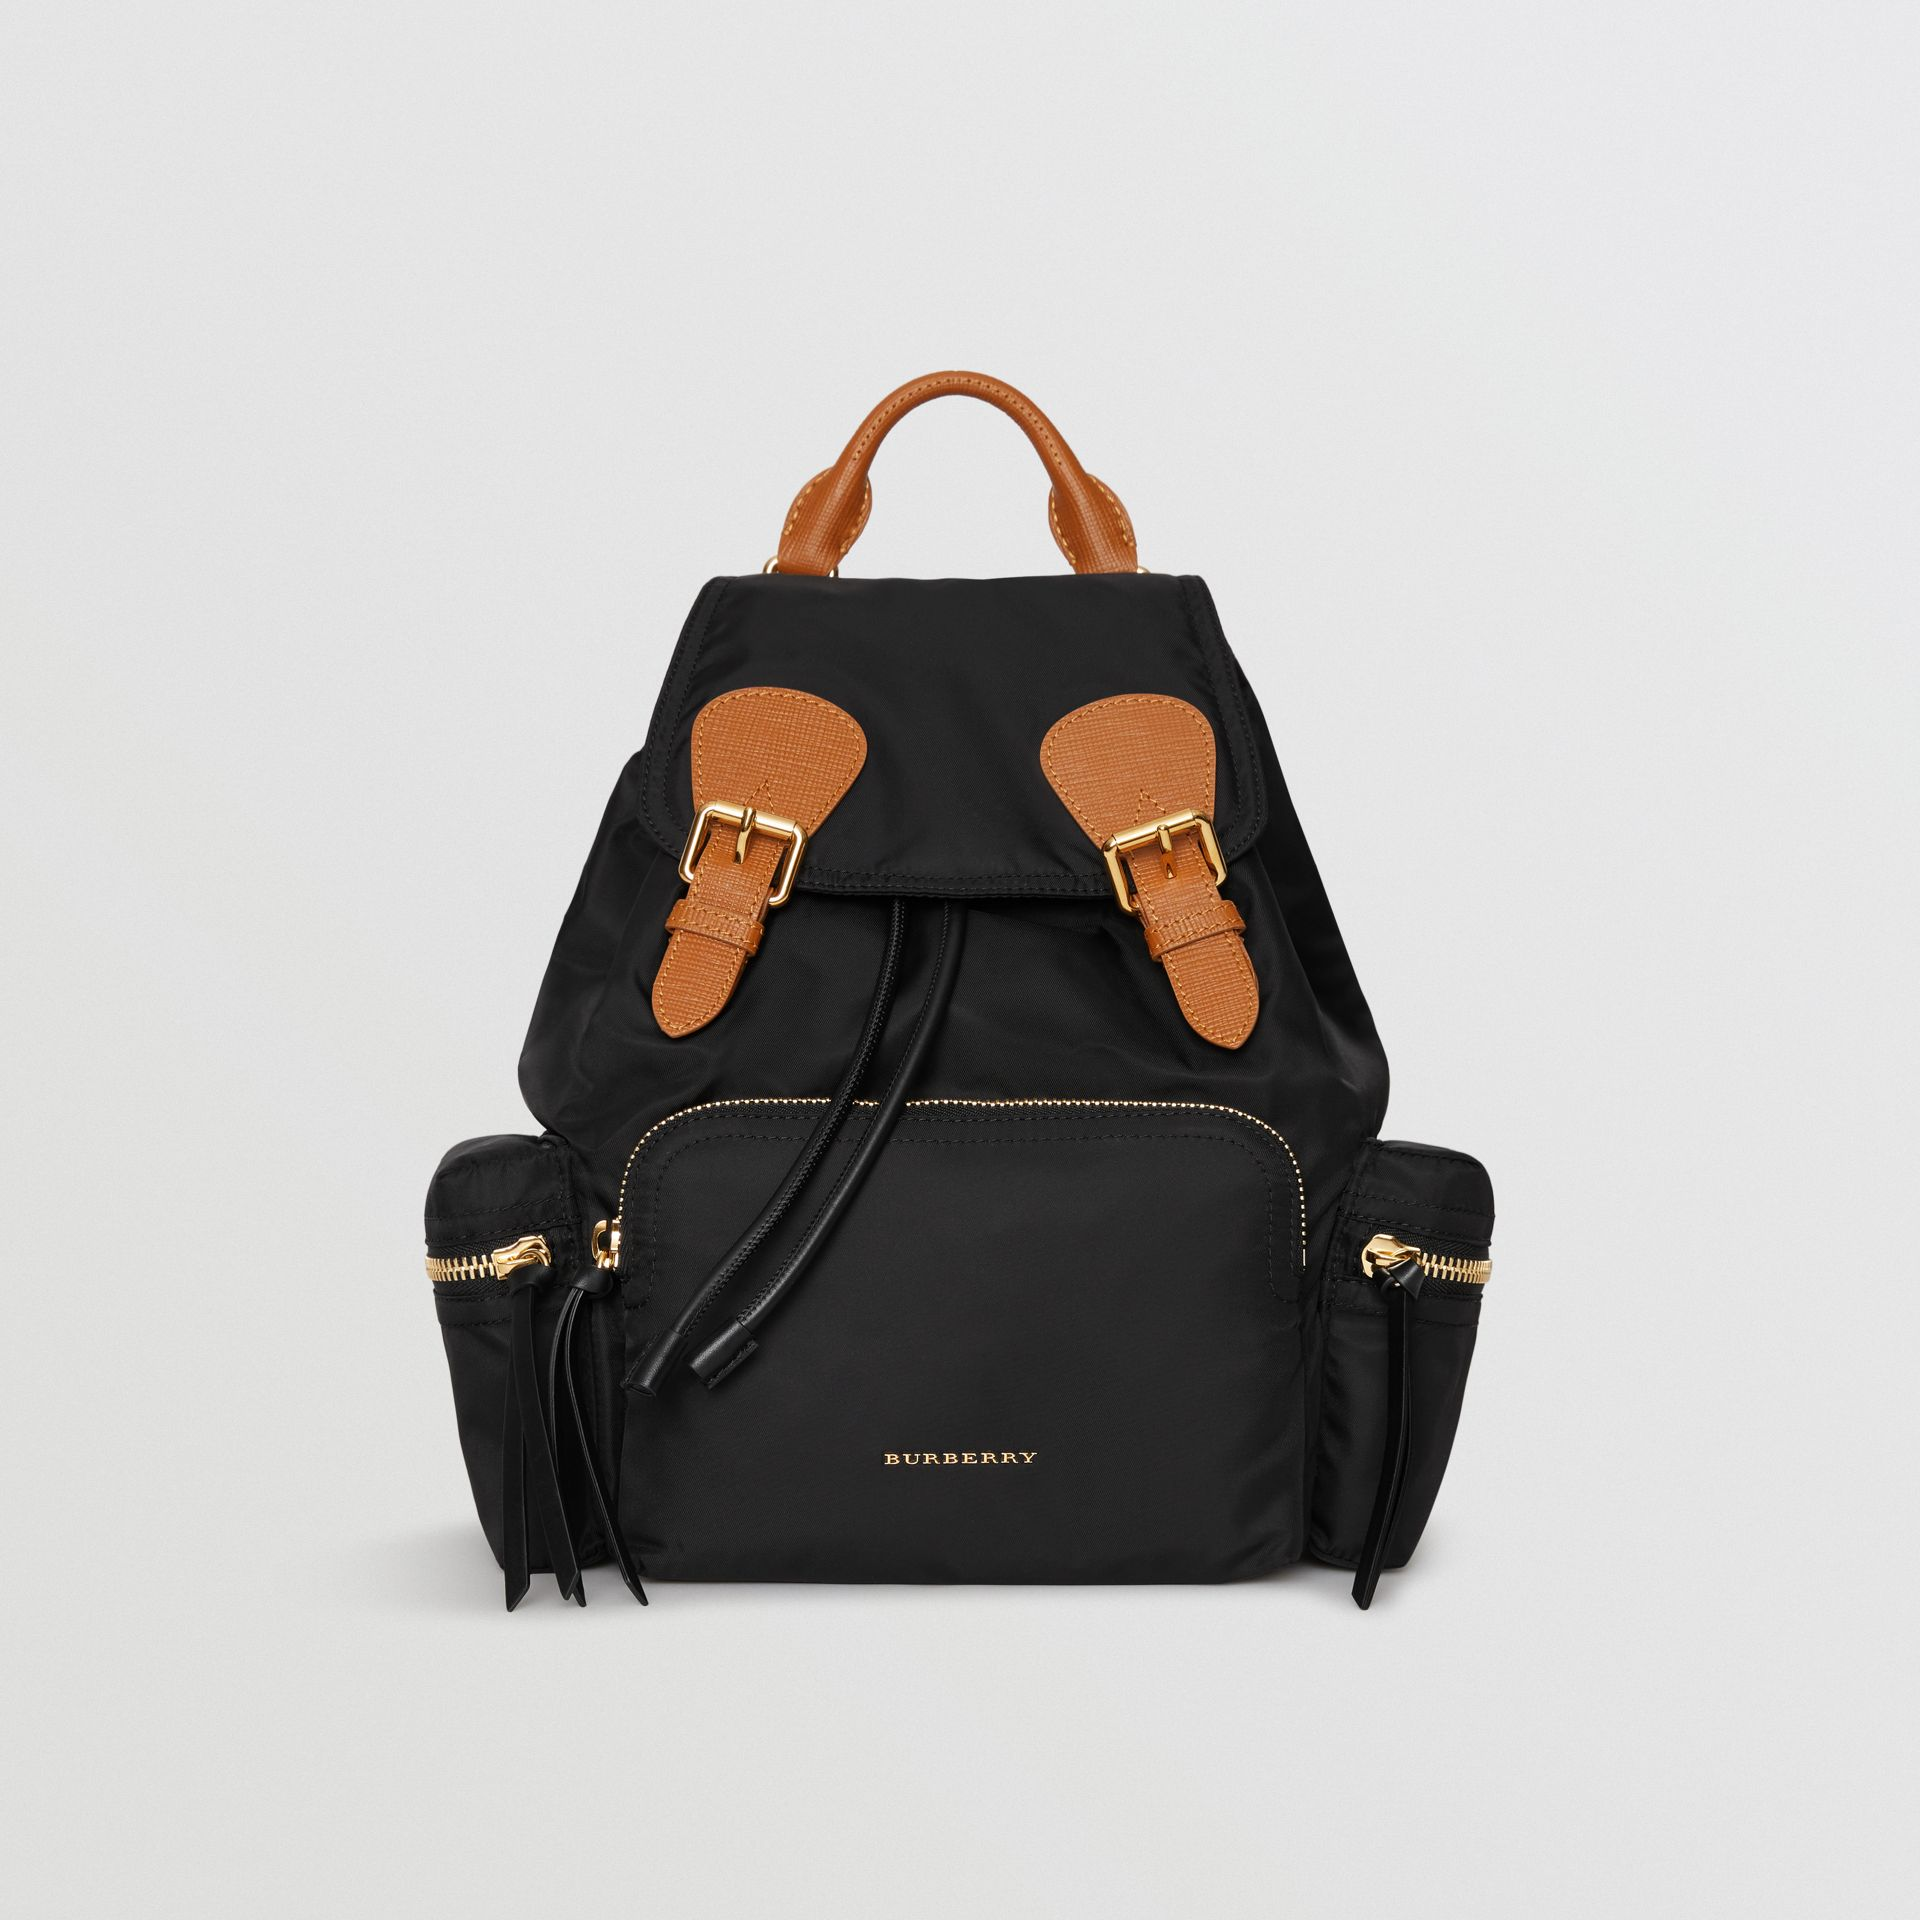 Sac The Rucksack moyen en nylon technique et cuir (Noir) - Femme | Burberry Canada - photo de la galerie 0